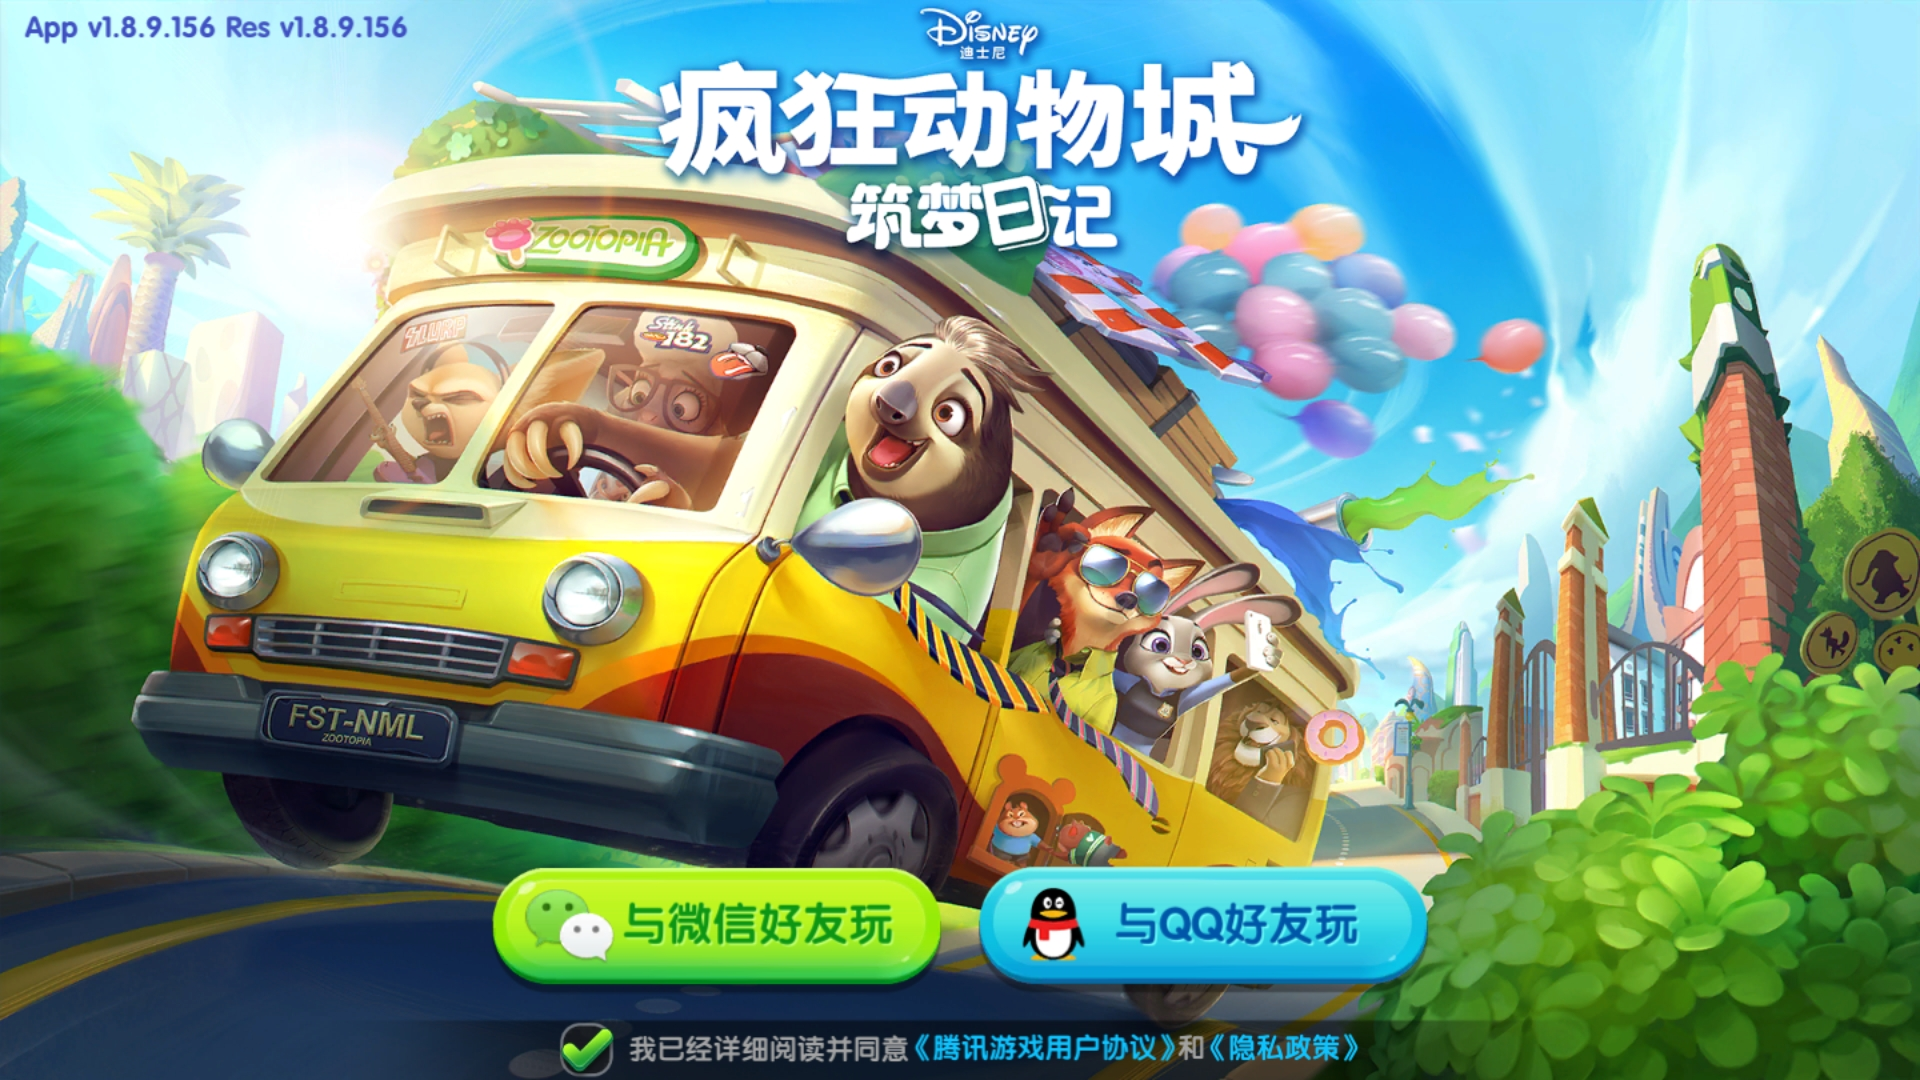 Official Zootopia Game launches in China! (with guide on how to get it)